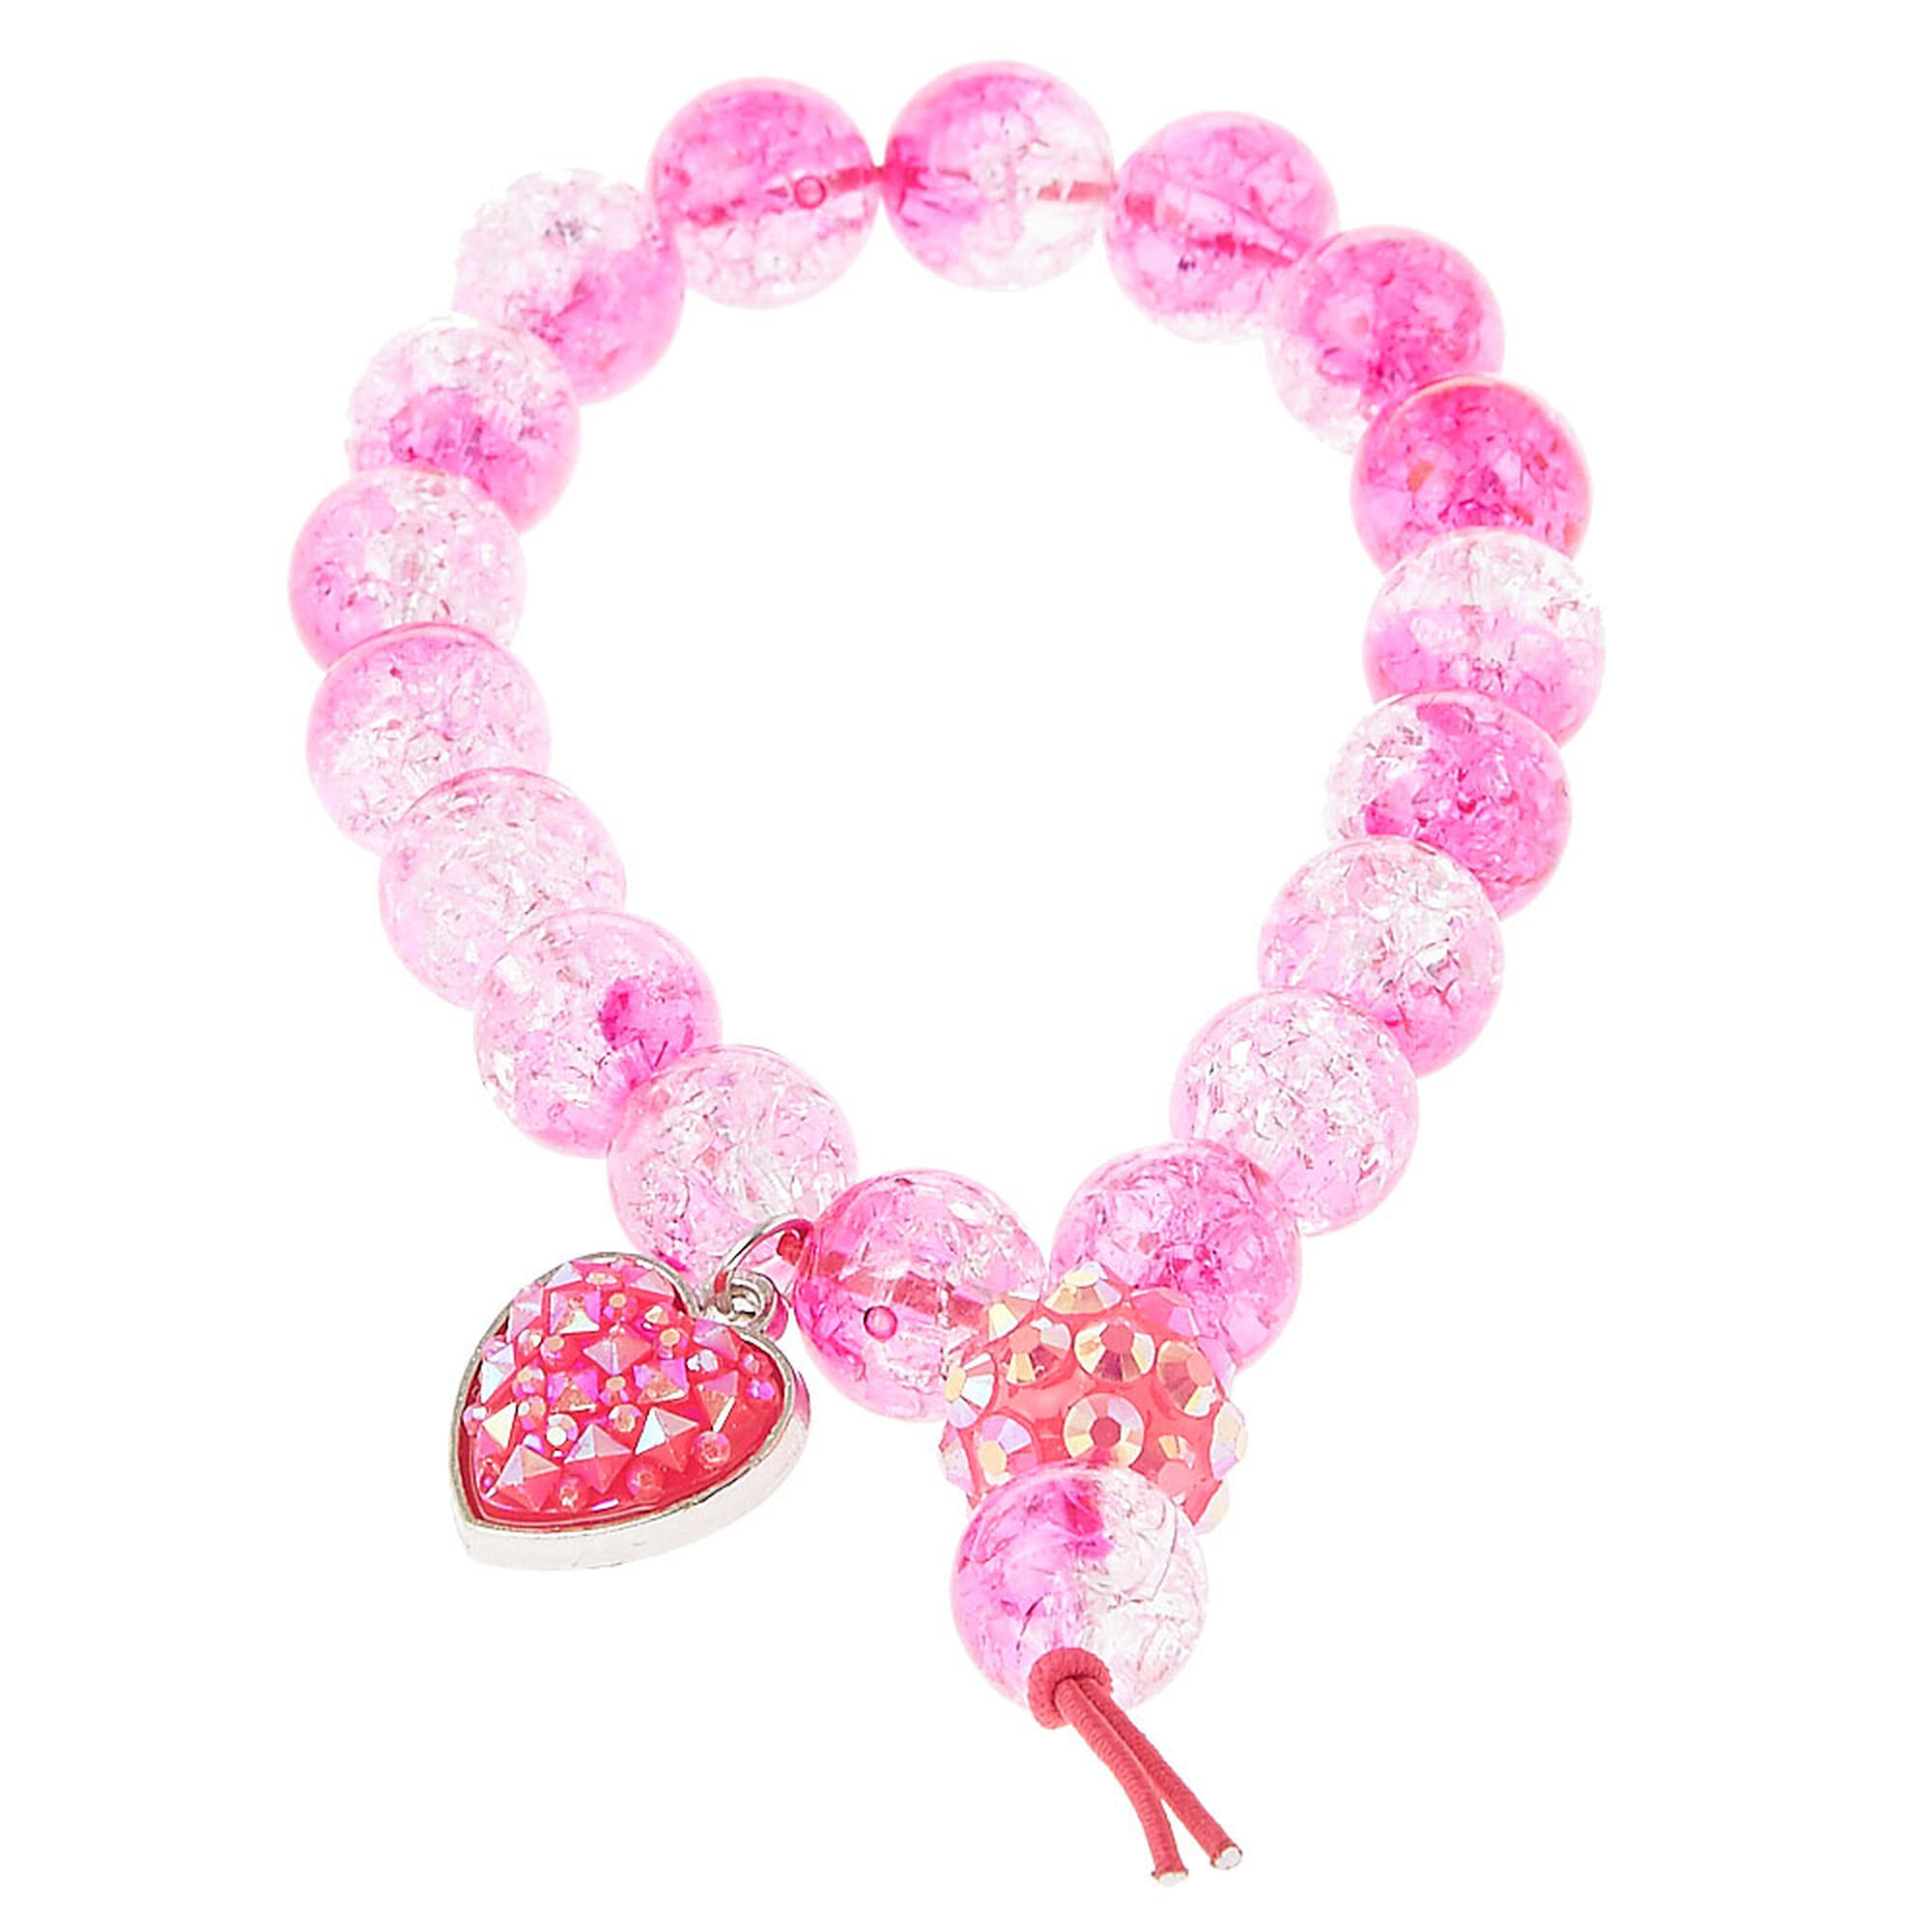 little bracelet baby detail pc for link girls htm nily boutique lily pink toddler heart